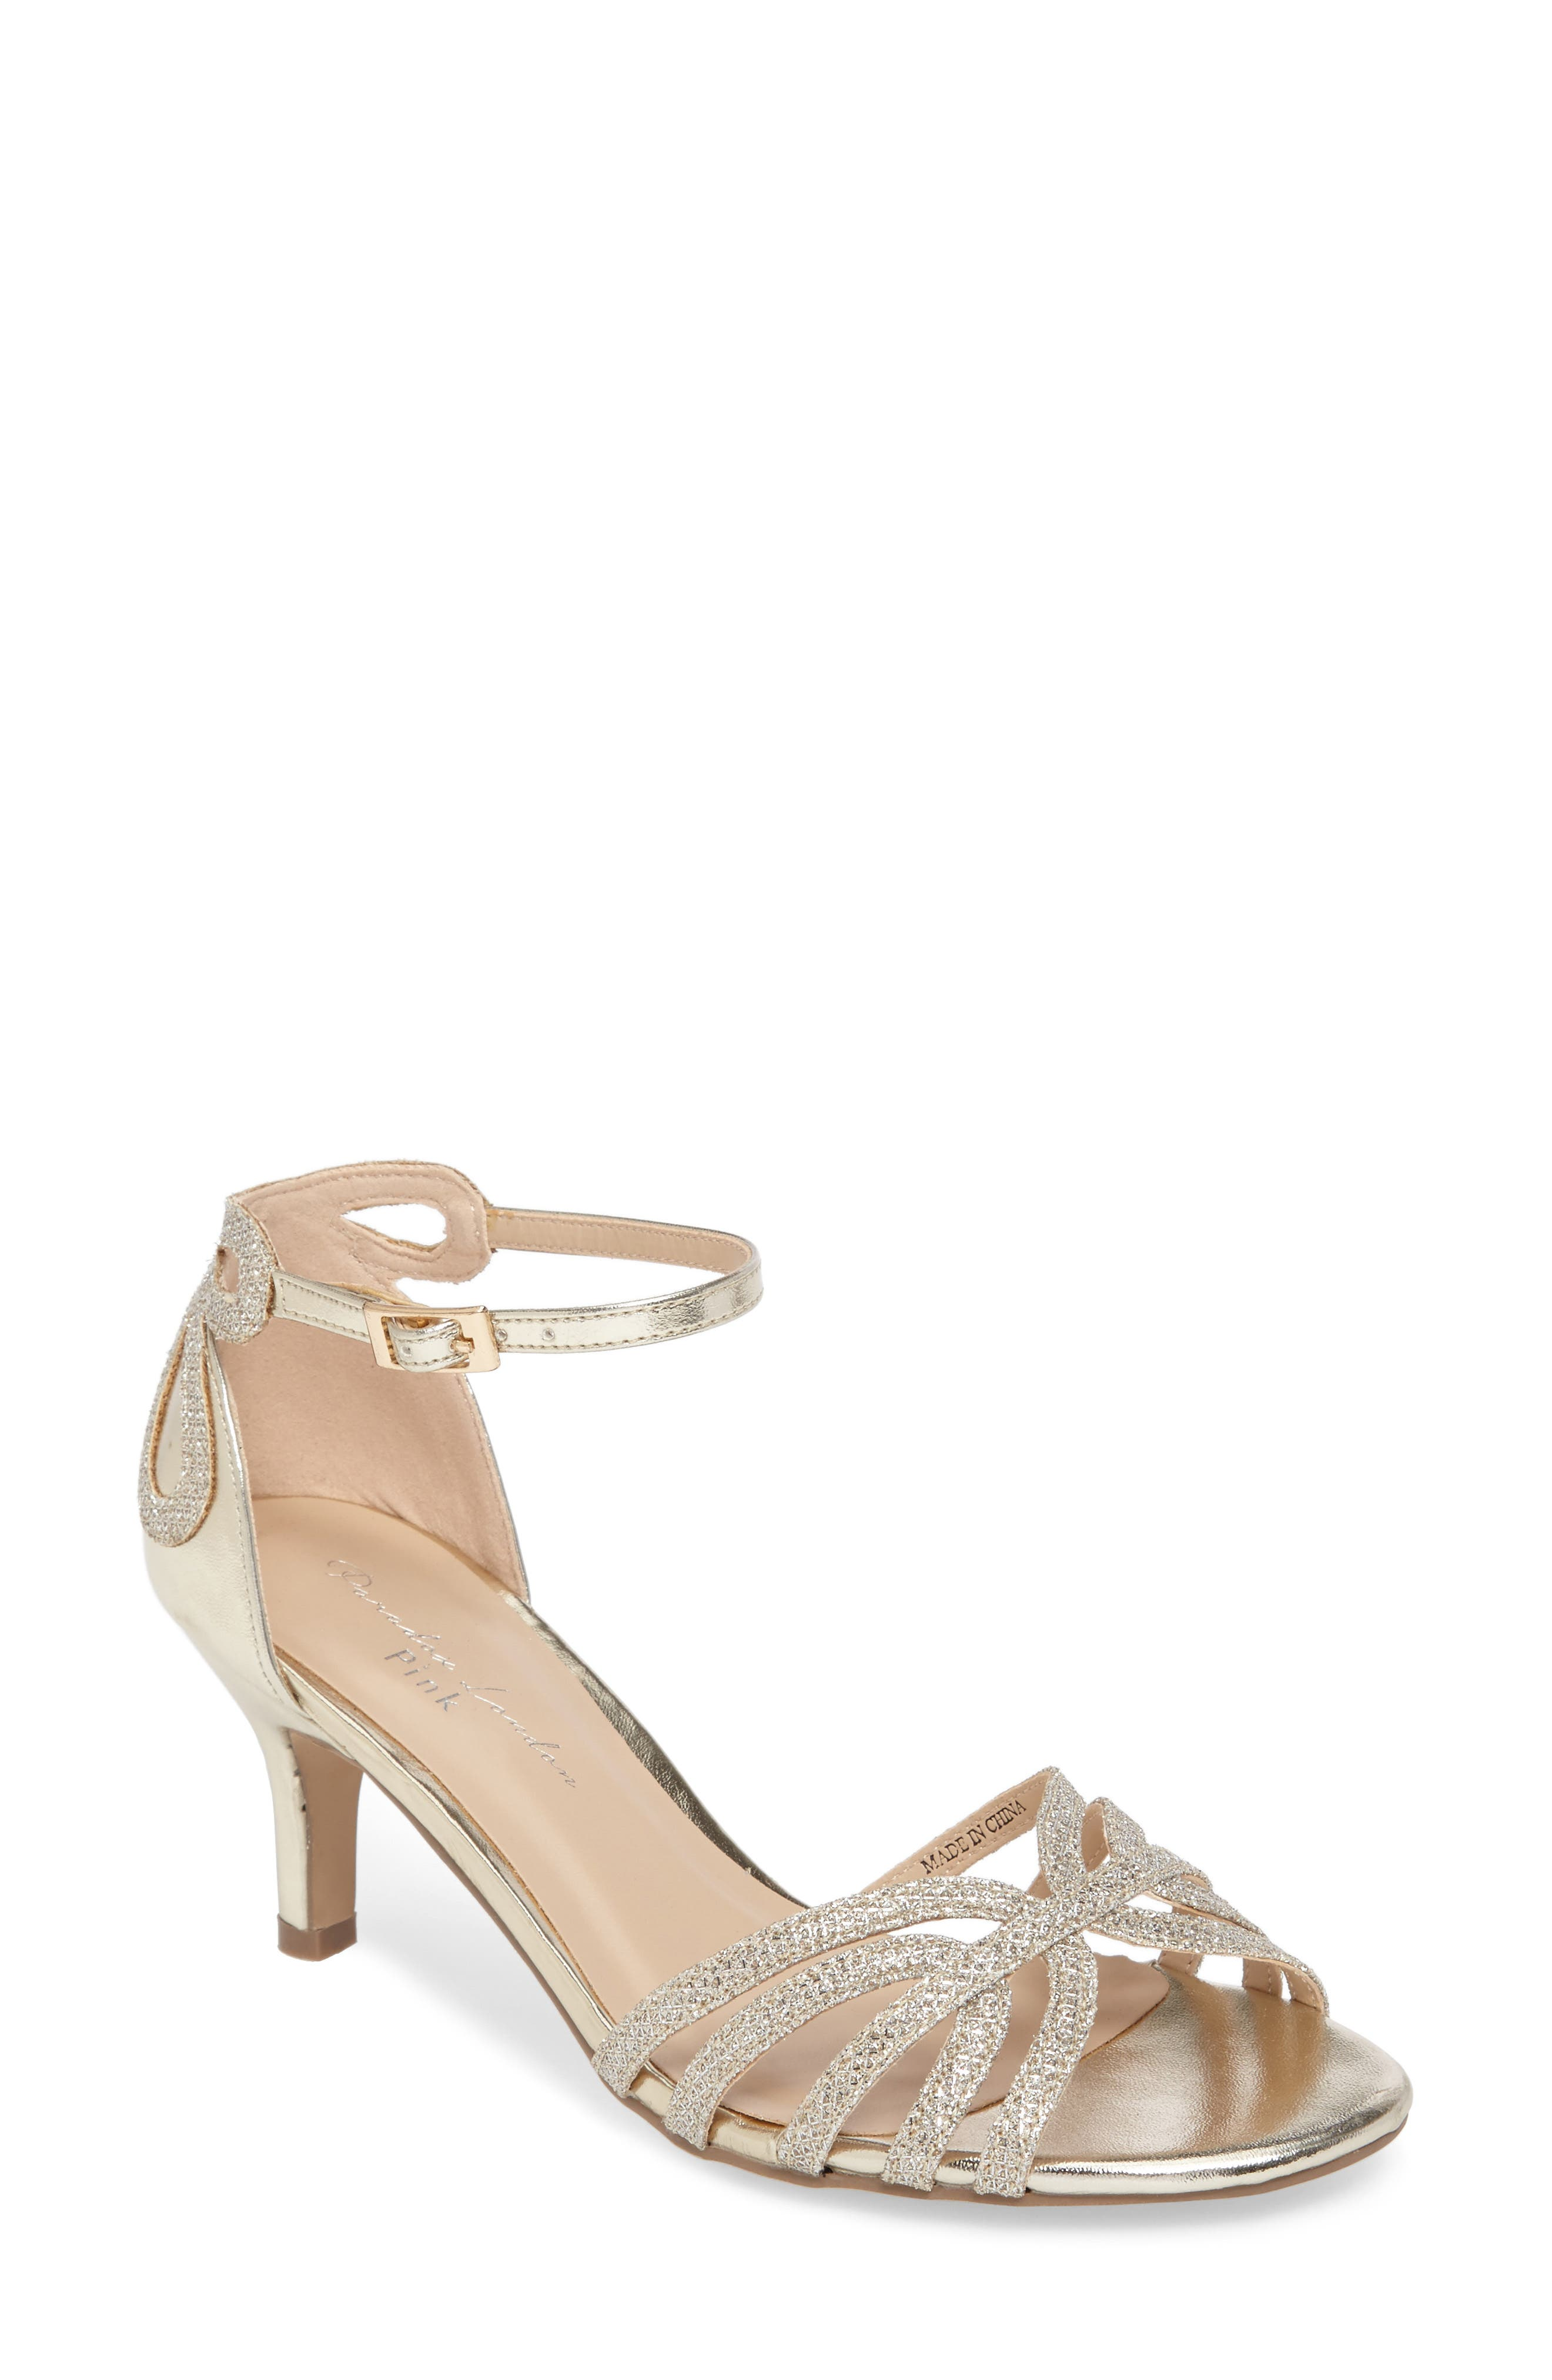 Melby Ankle Strap Sandal,                         Main,                         color, Champagne